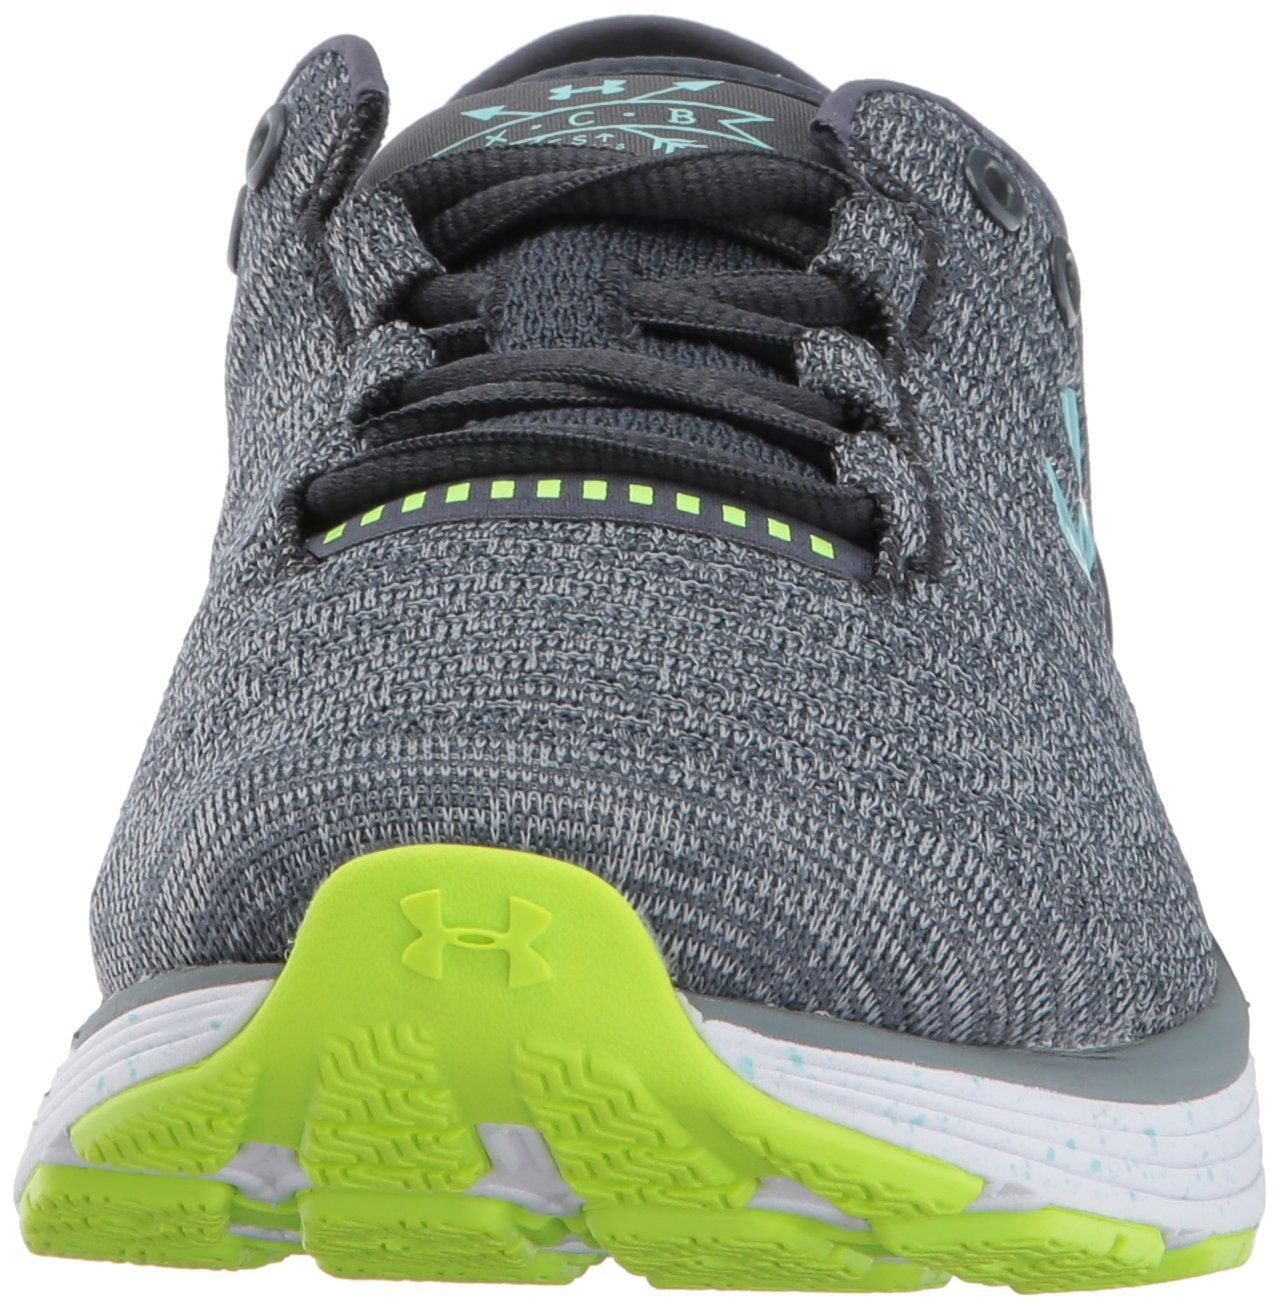 reputable site 397ce 5ea57 Under Armour Womens Charged Bandit 3 XCB Running Shoes Steel ...